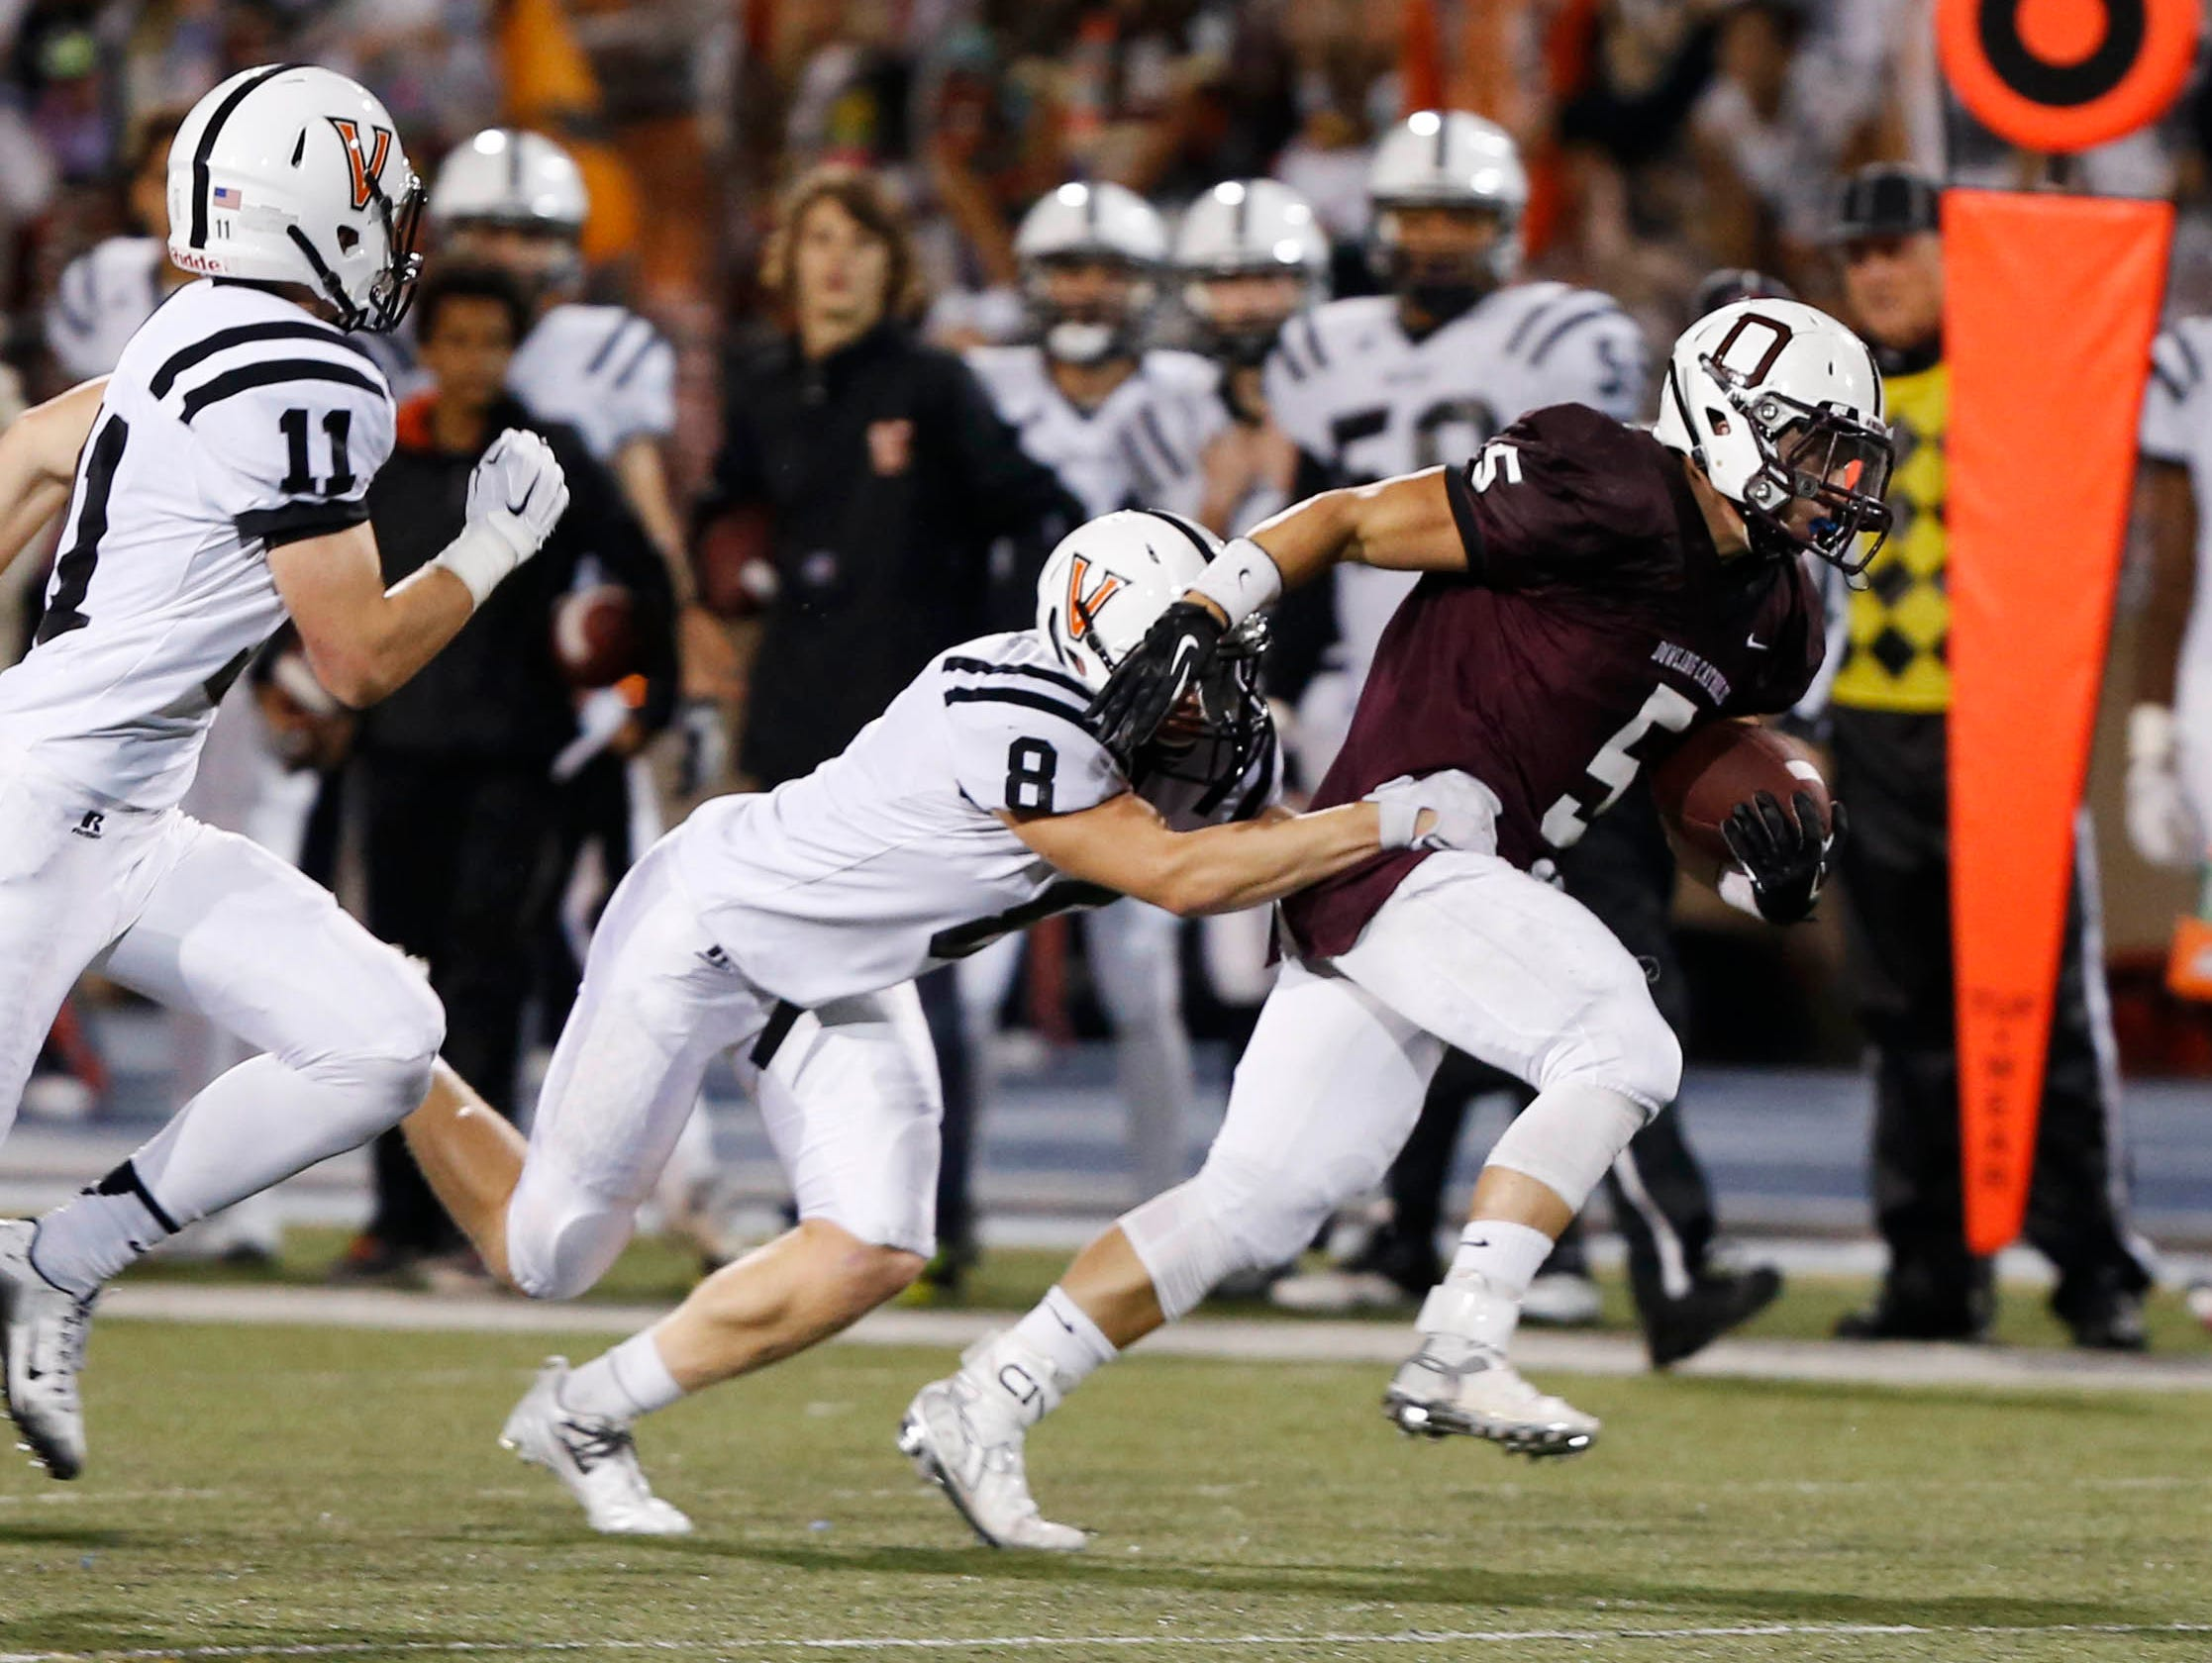 Dowling Catholic's Cole Deskin (5) tries to break away from Valley's William Phillips (8) Friday, Sept. 18, 2015, at Drake Stadium in Des Moines.